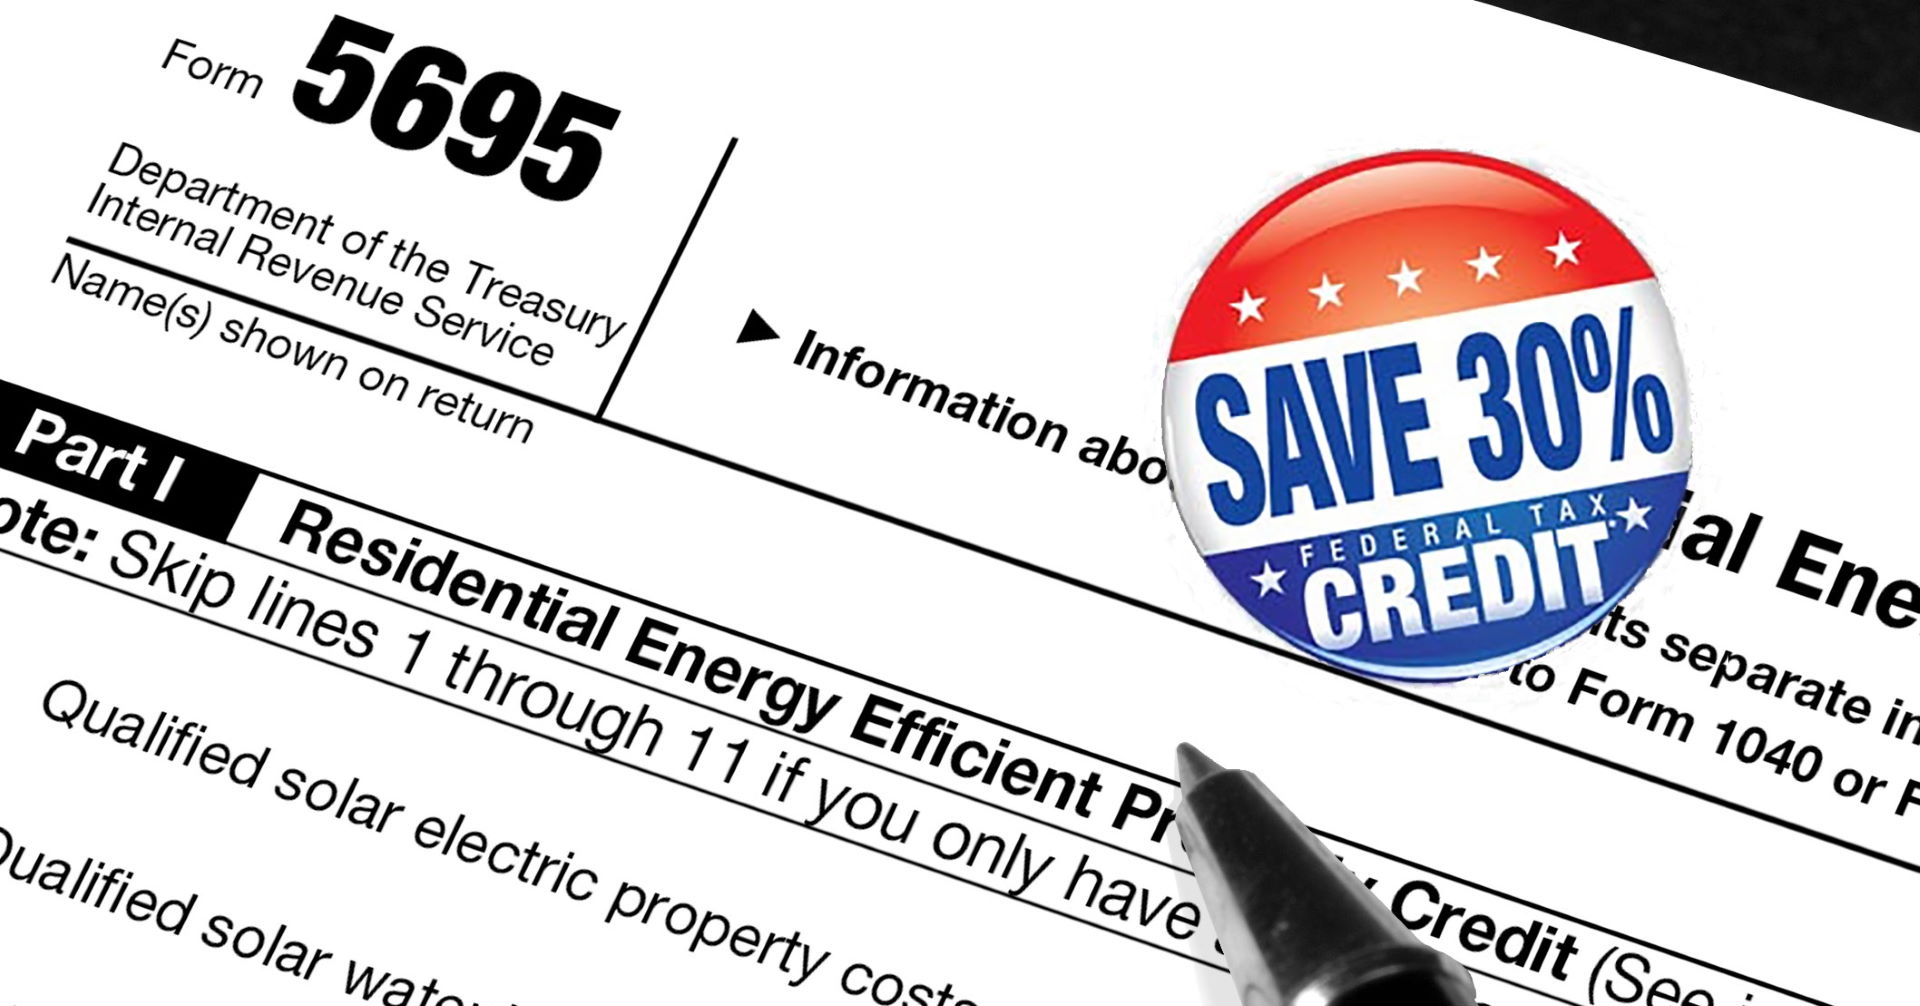 How to Claim the Federal Solar Tax Credit